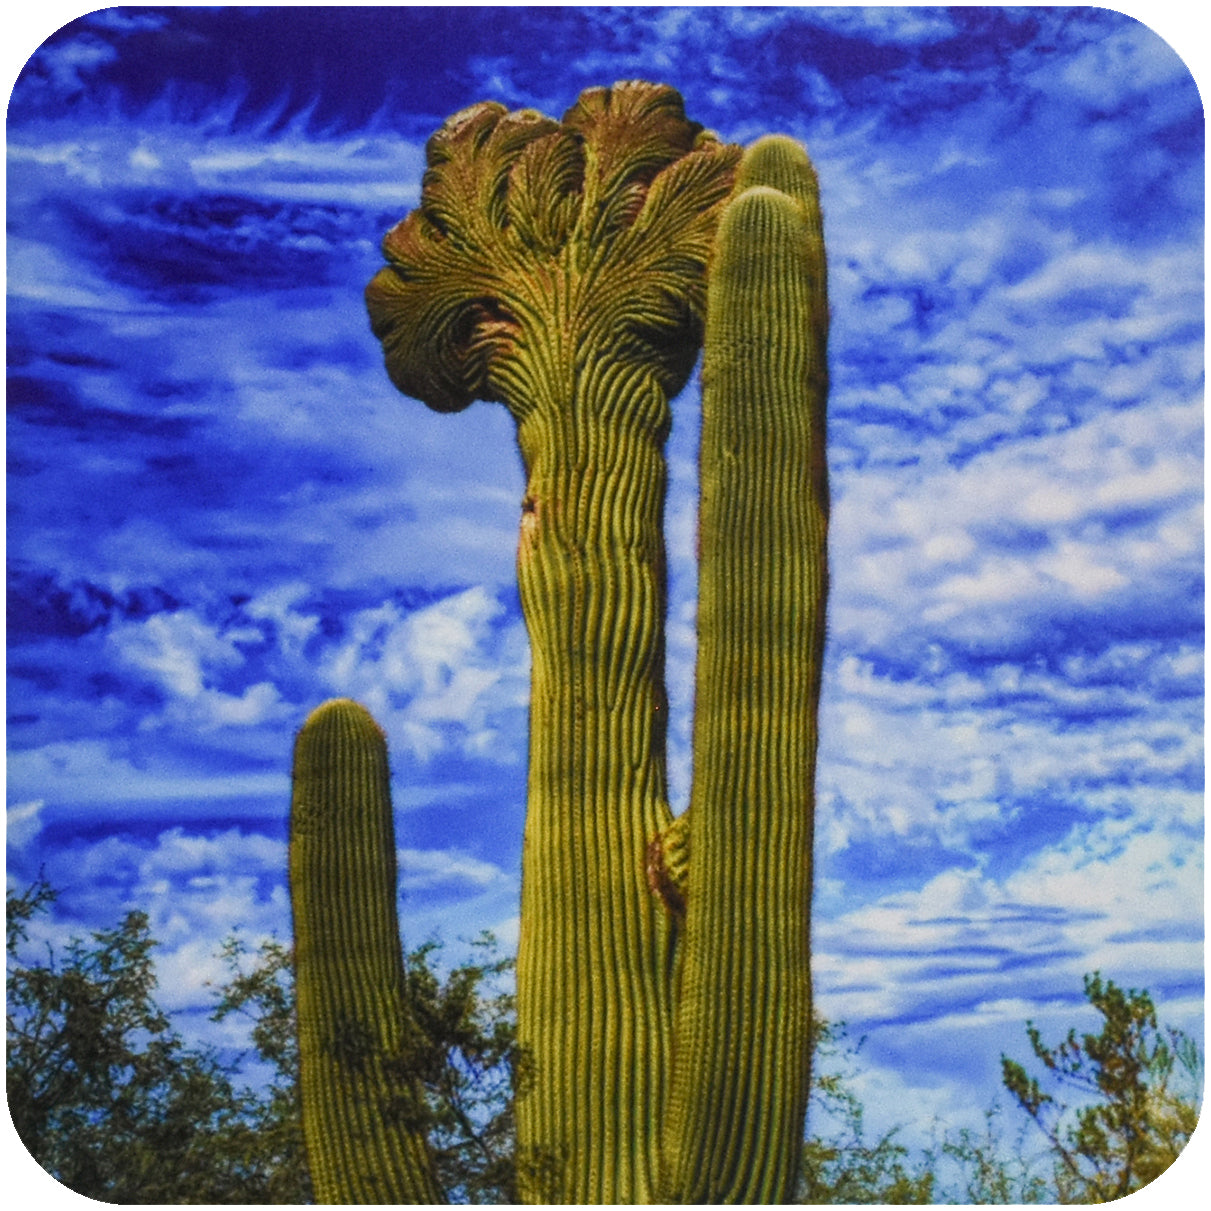 Funky Saguaro Cactus Coaster - Wear the Wonder